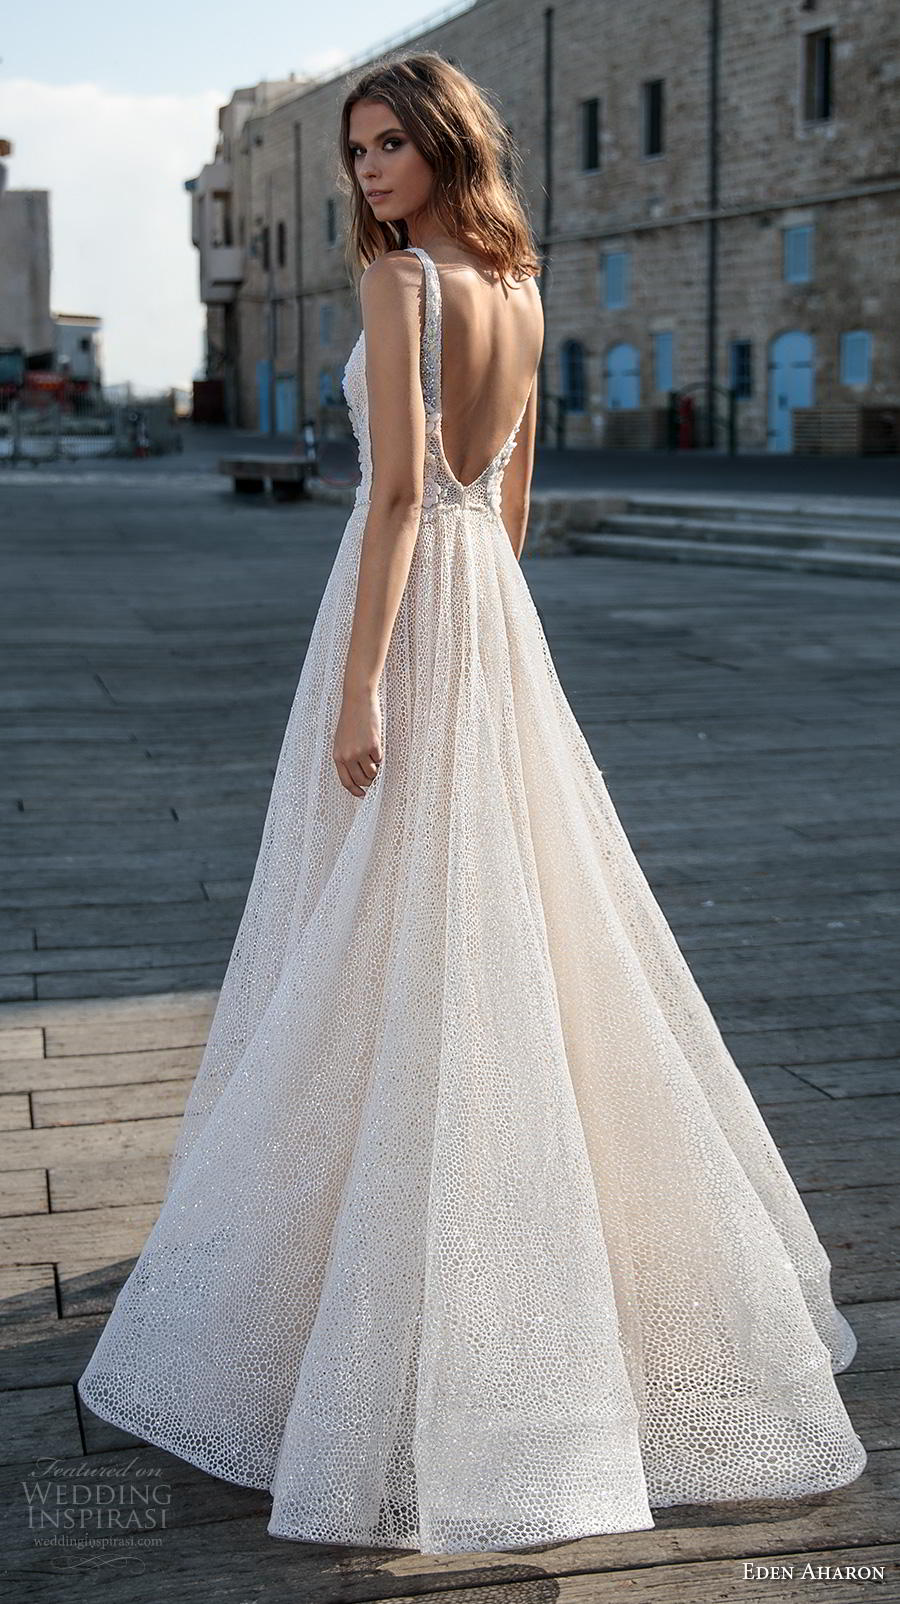 eden aharon 2019 bridal sleeveless deep plunging v neck full embellishment romantic soft a  line wedding dress backless v back sweep train (3) bv